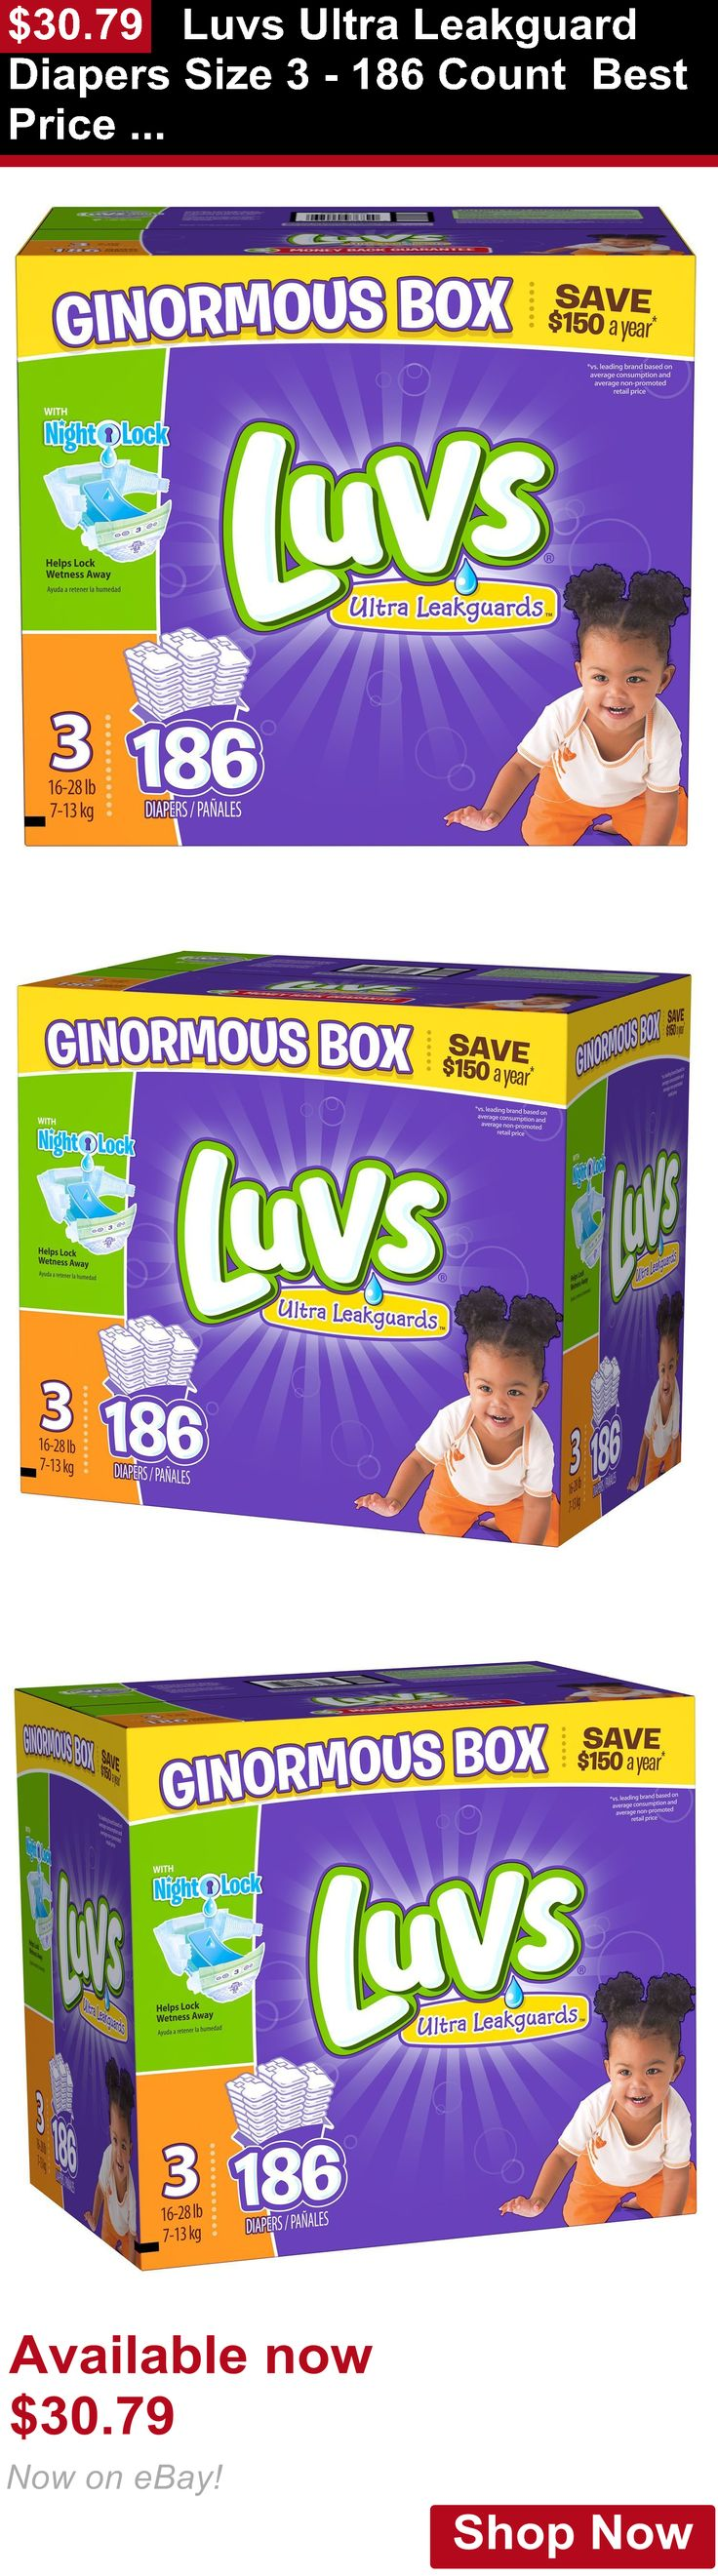 Disposable Diapers: Luvs Ultra Leakguard Diapers Size 3 - 186 Count Best Price And Free Shipping! BUY IT NOW ONLY: $30.79